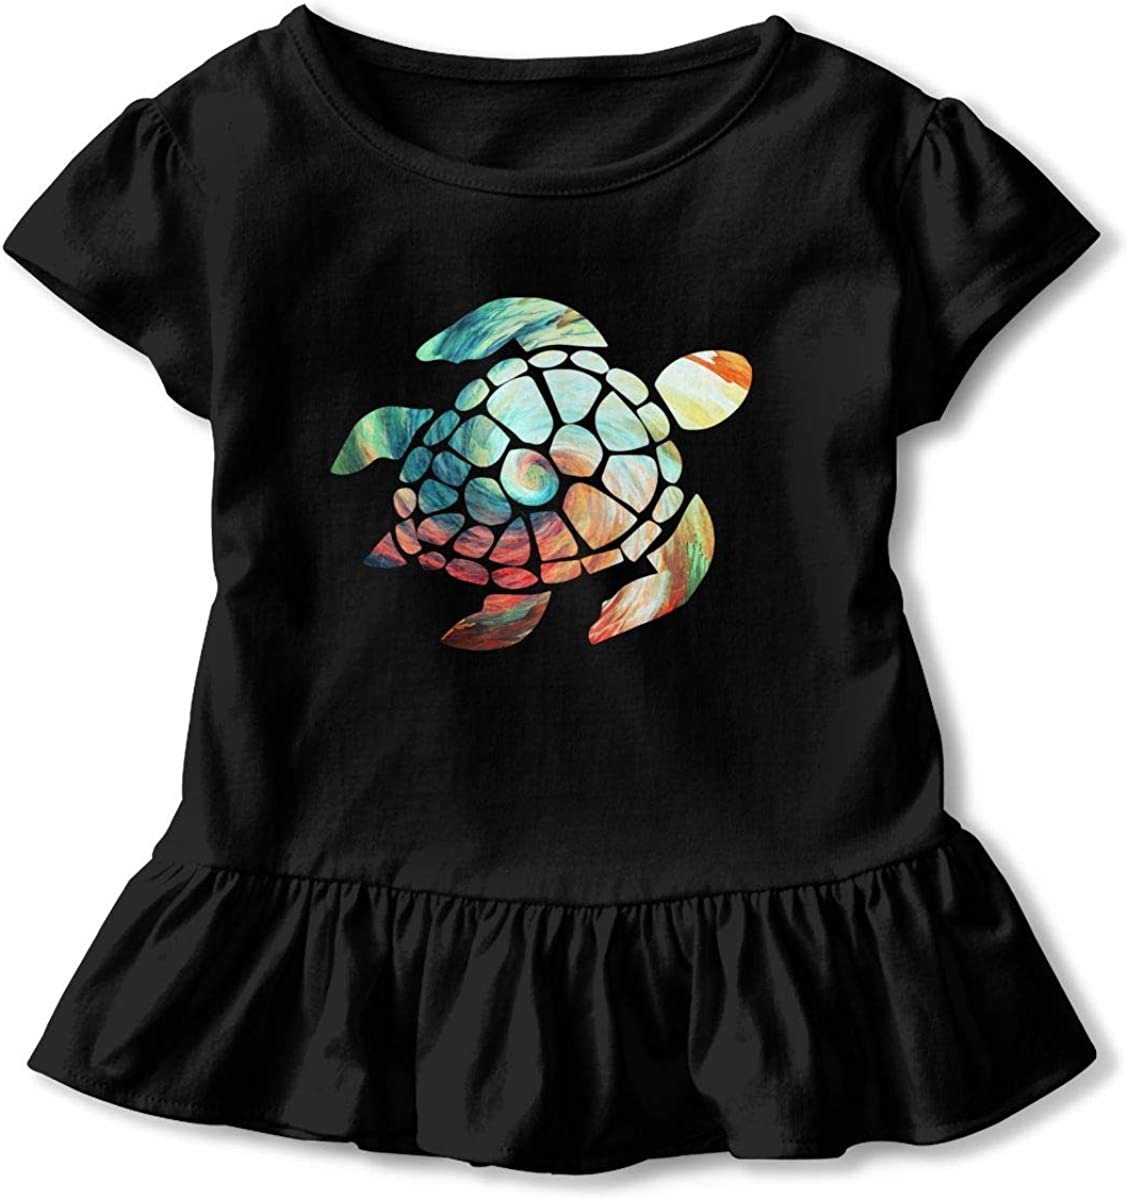 Space Watercolour Turtle Toddler Girls T Shirt Kids Cotton Short Sleeve Ruffle Tee